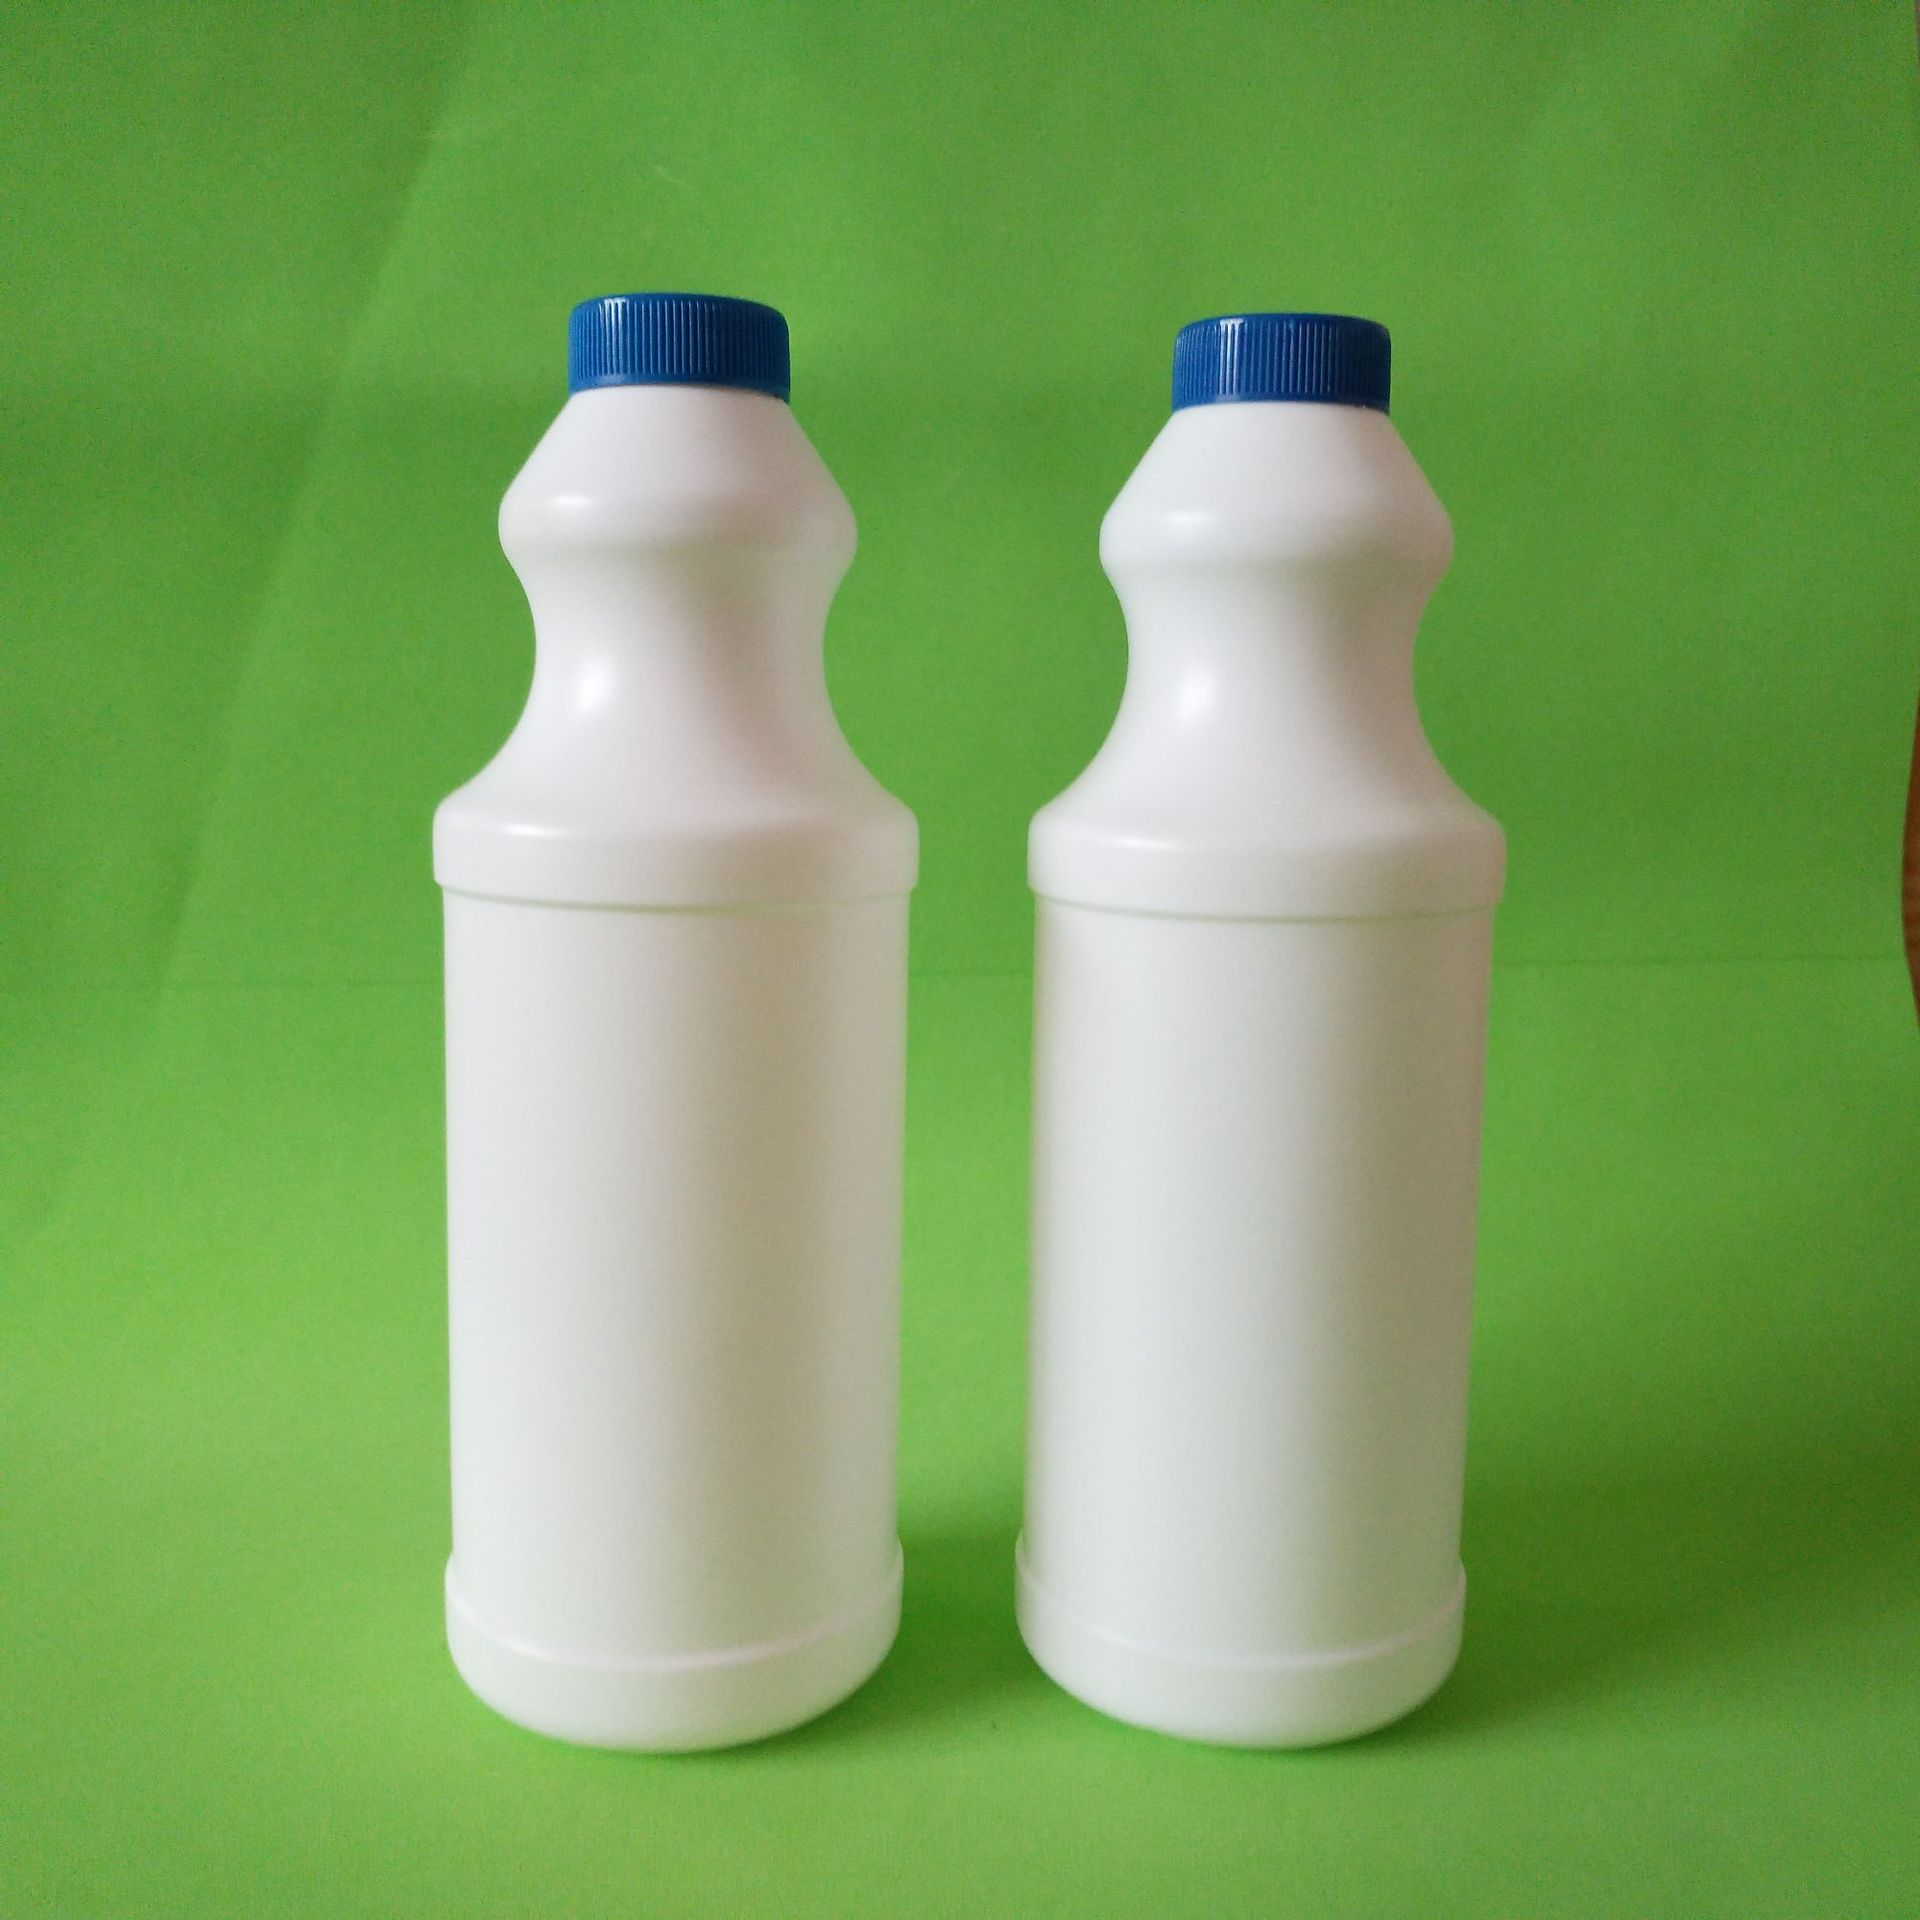 500ml White HDPE Bottle for Disinfectant /HDPE BOTTLES - 副本